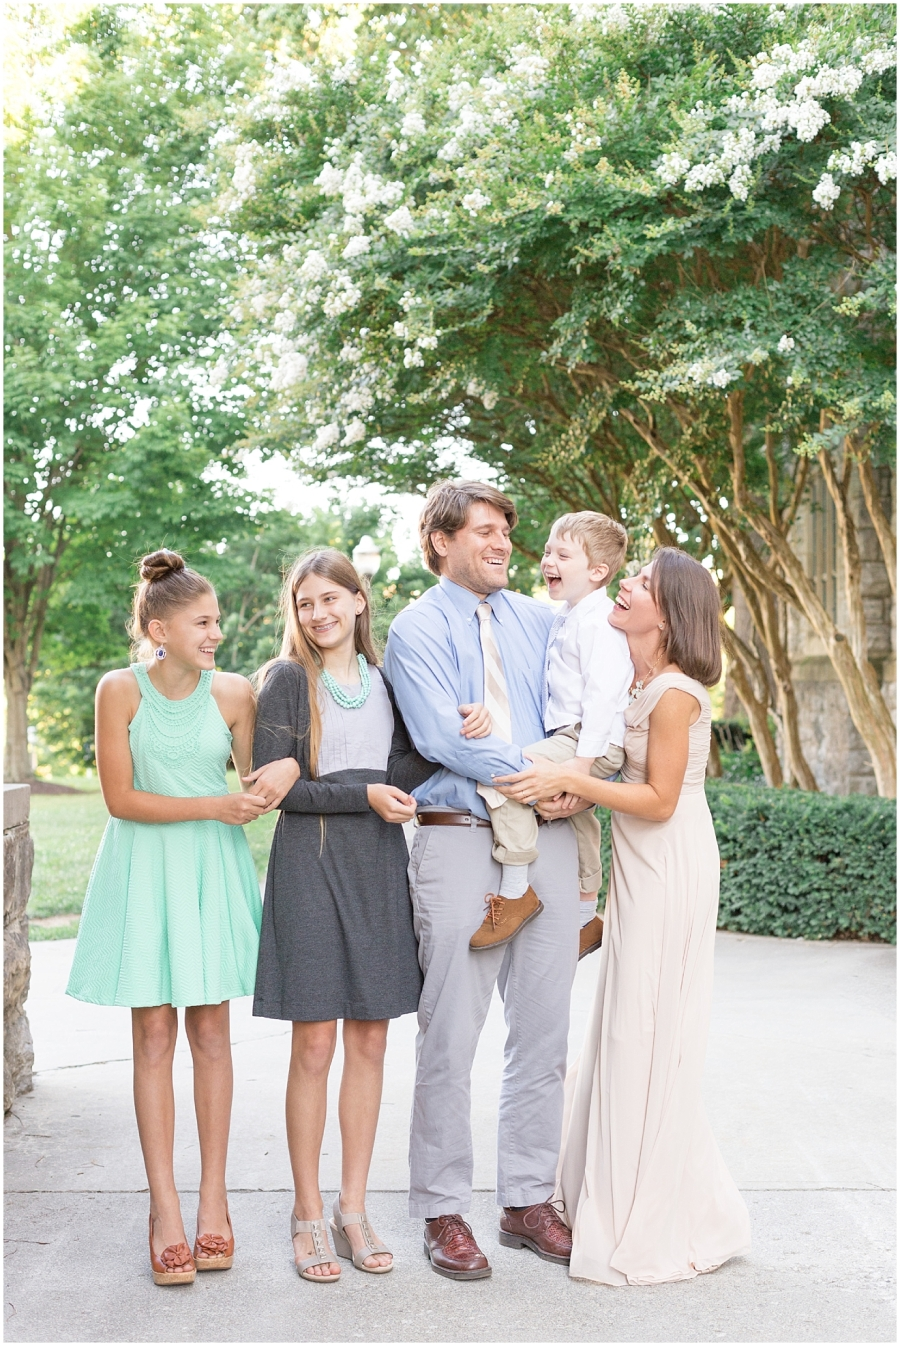 dressed-up-family-photos-at-virginia-tech